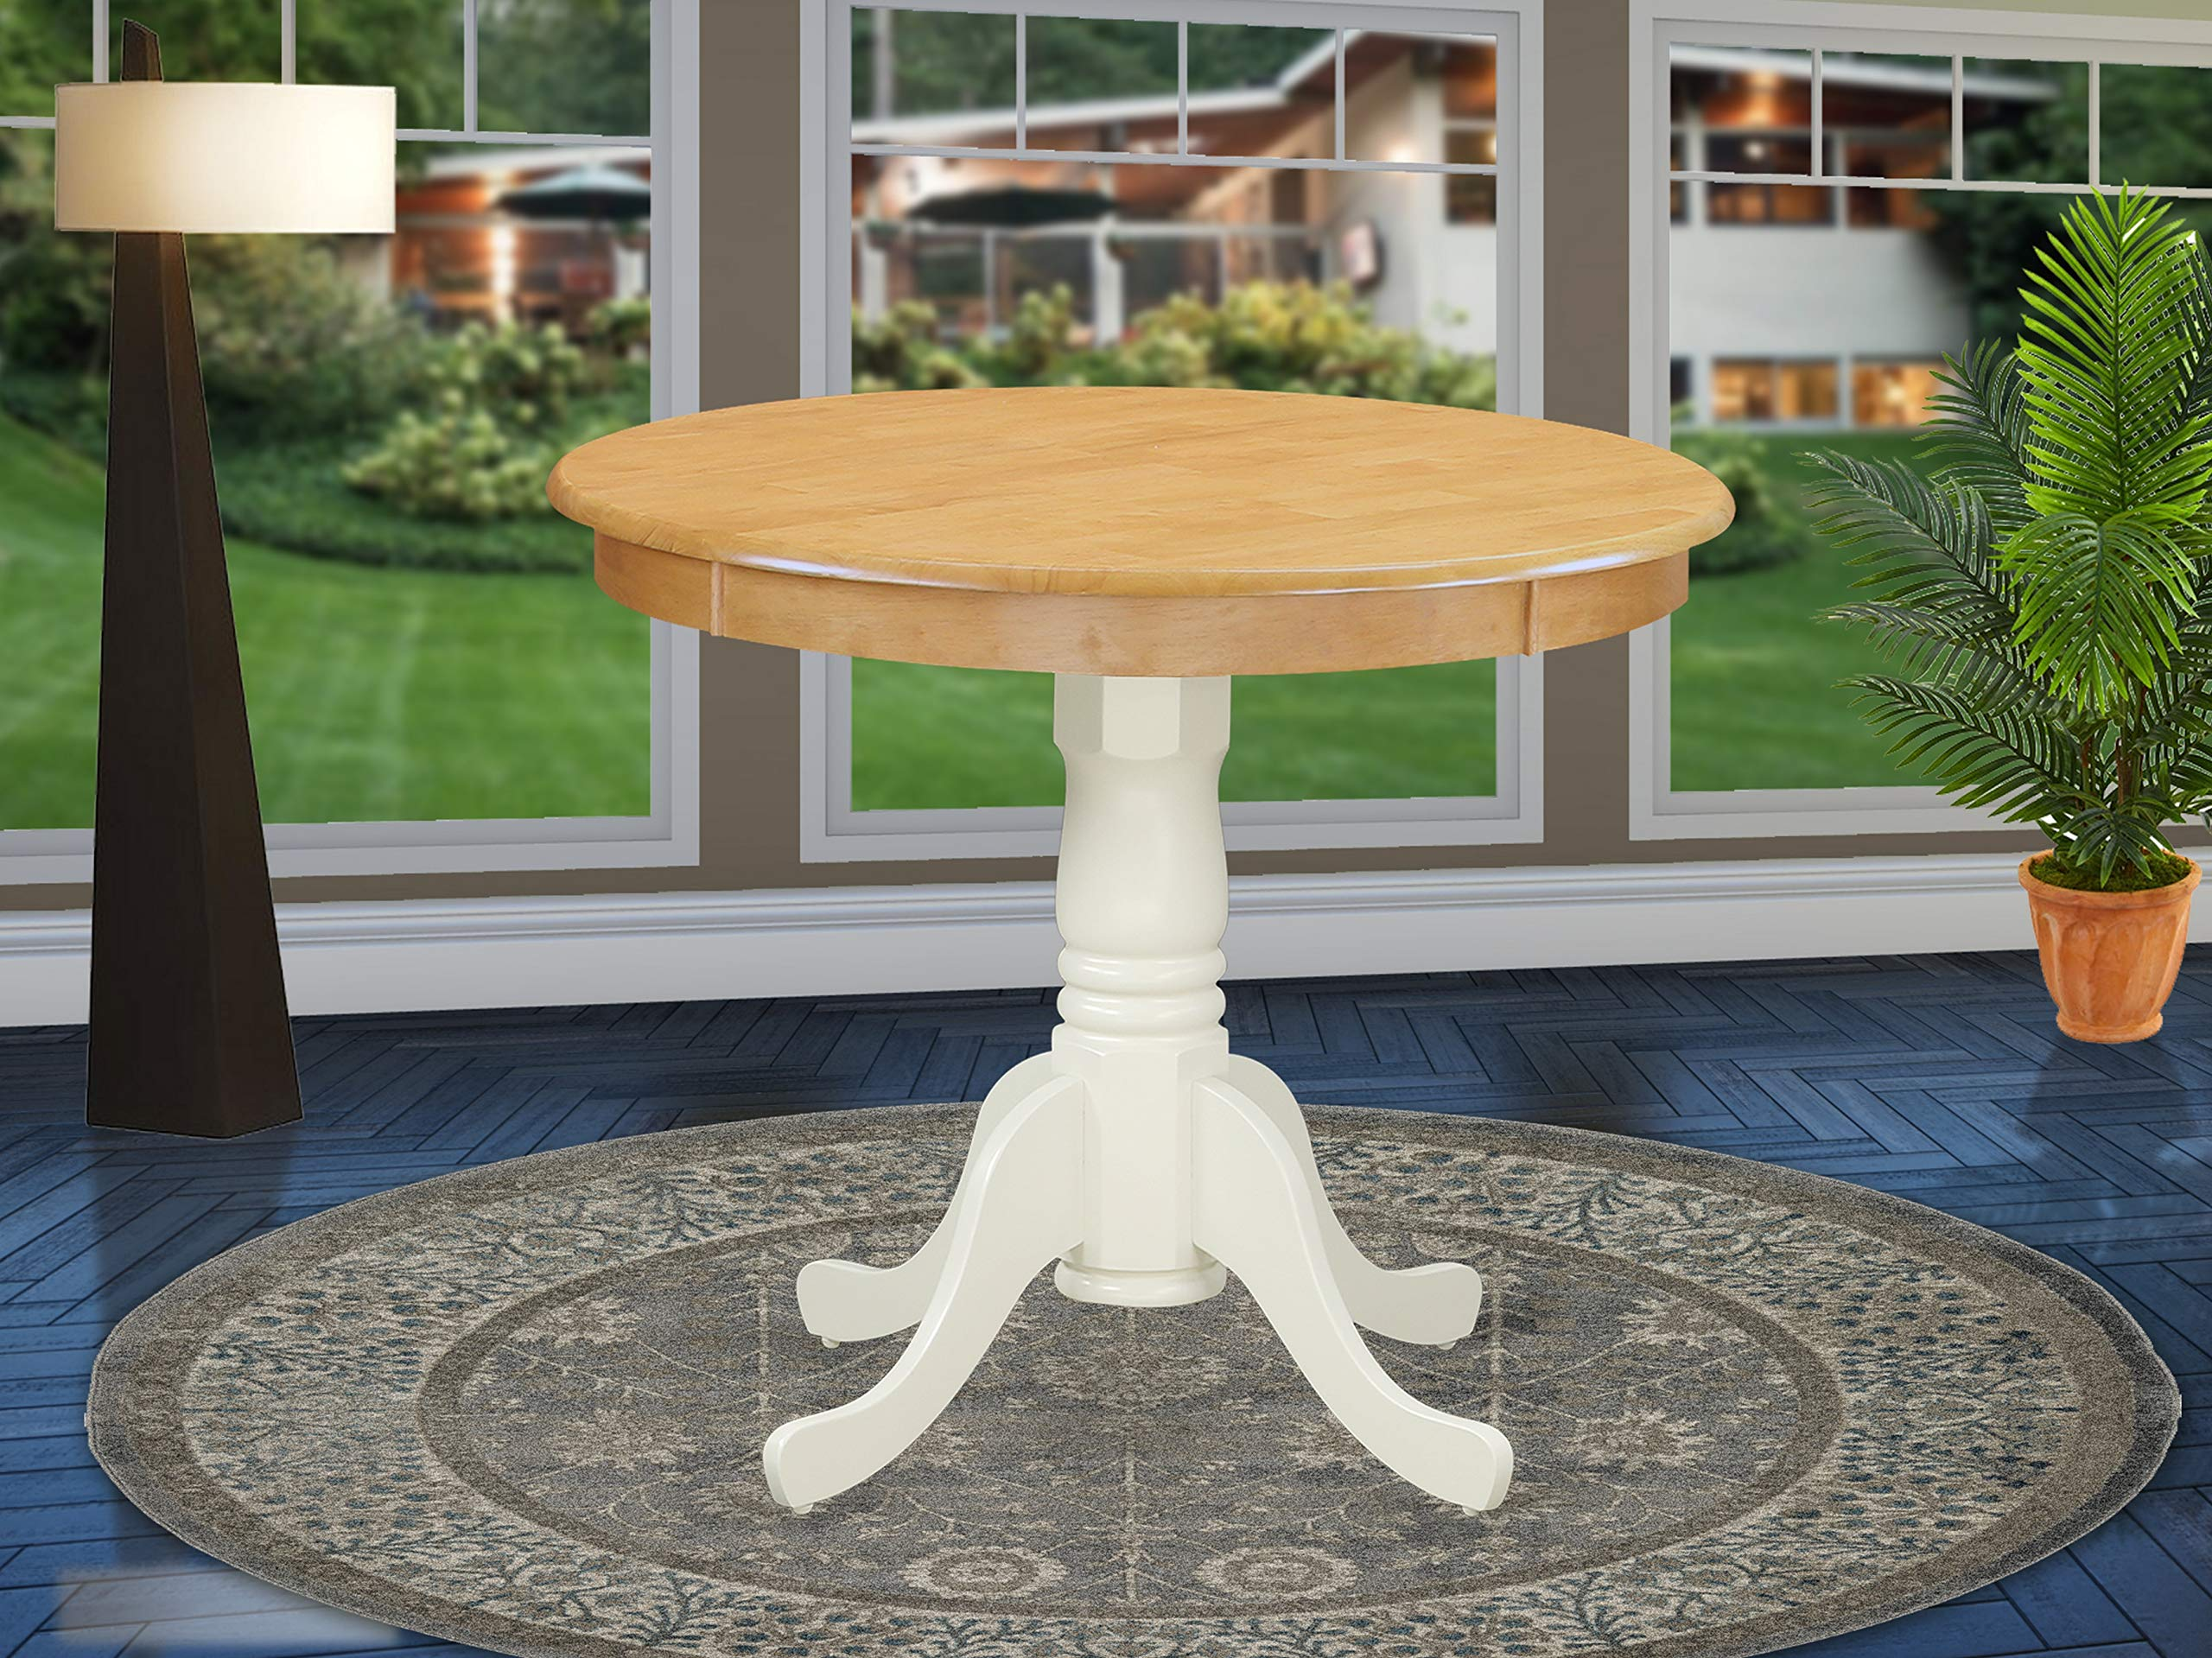 East West Furniture ANT-OLW-TP Antique Dining Table, 36'' Round, Oak and Linen White Finish by East West Furniture